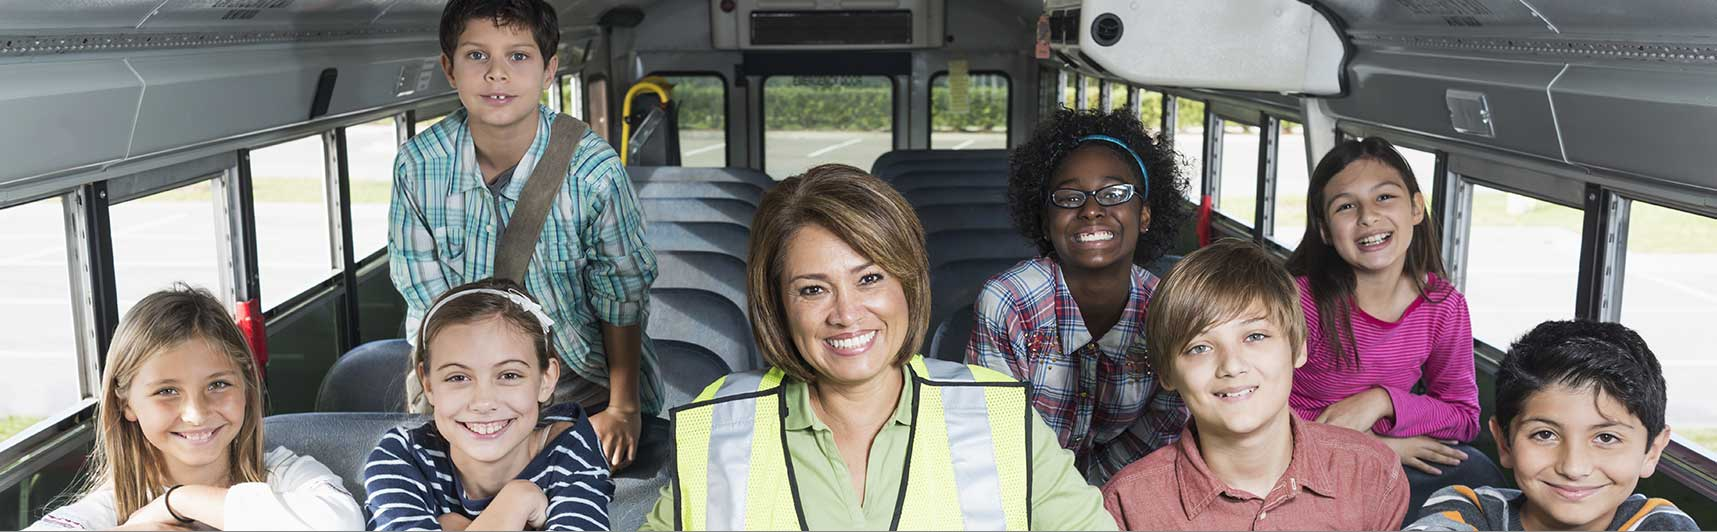 Image of kids and bus lady in the bus